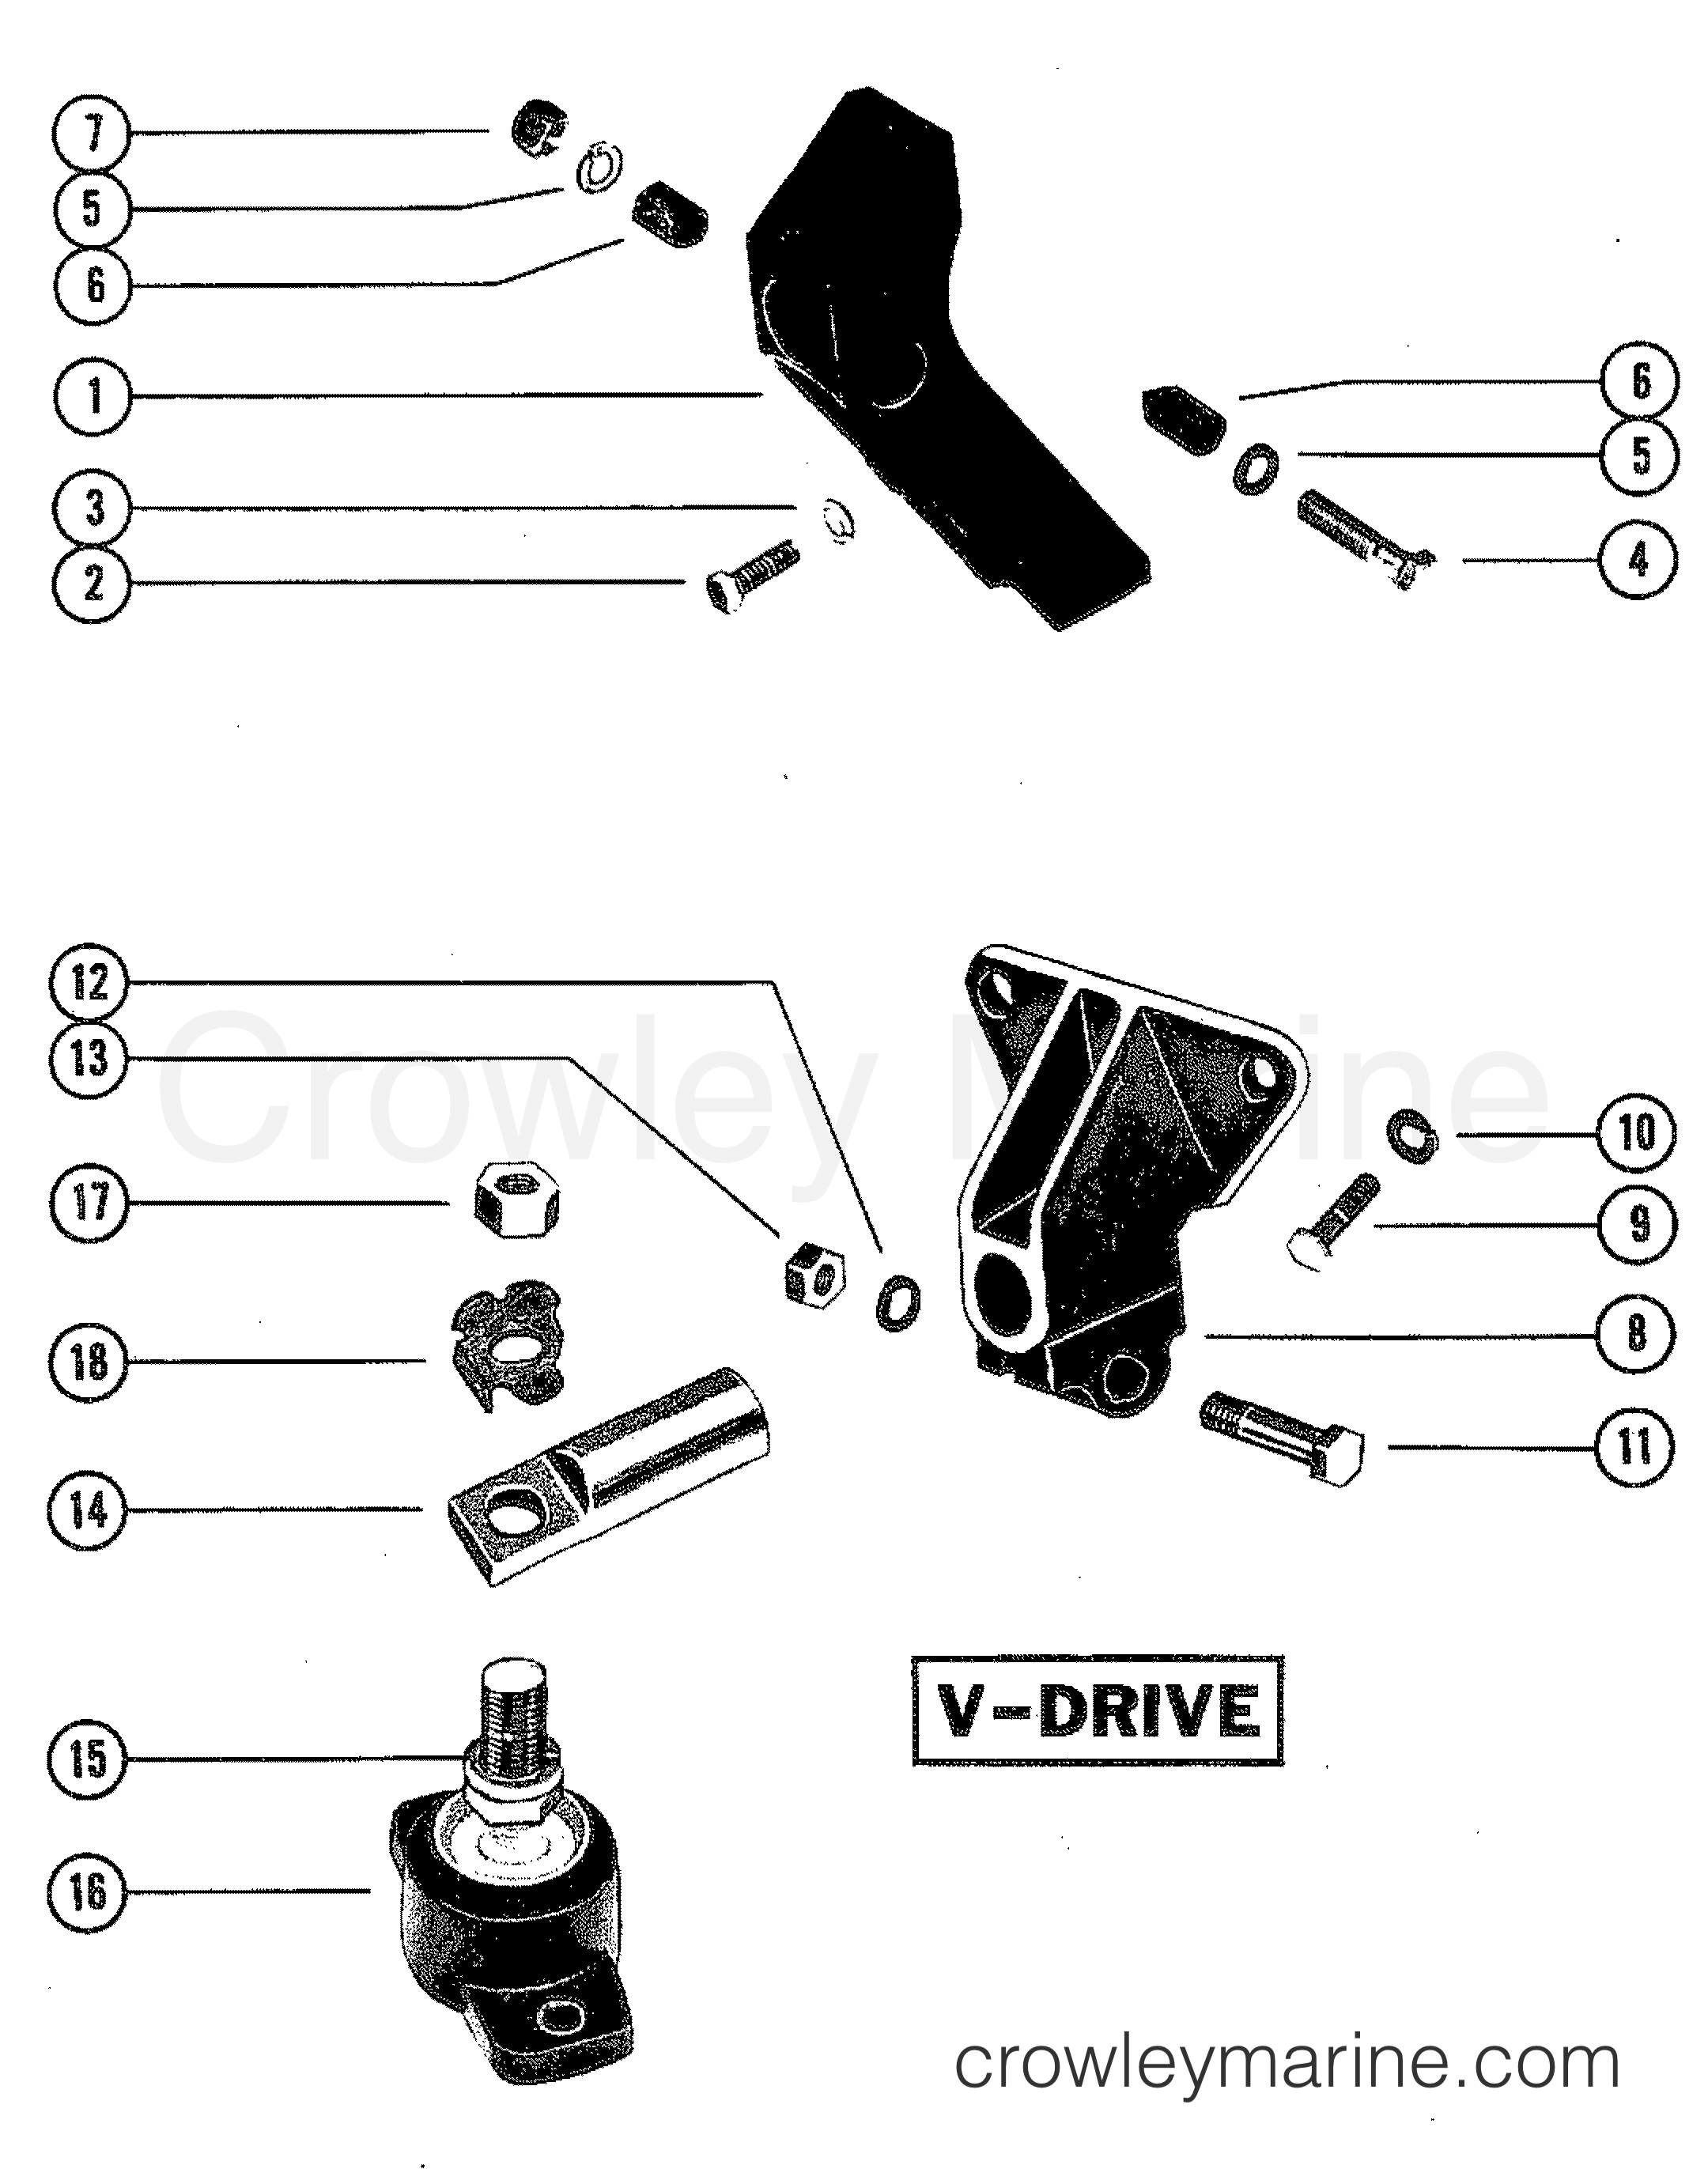 transmission and engine mounting  v-drive